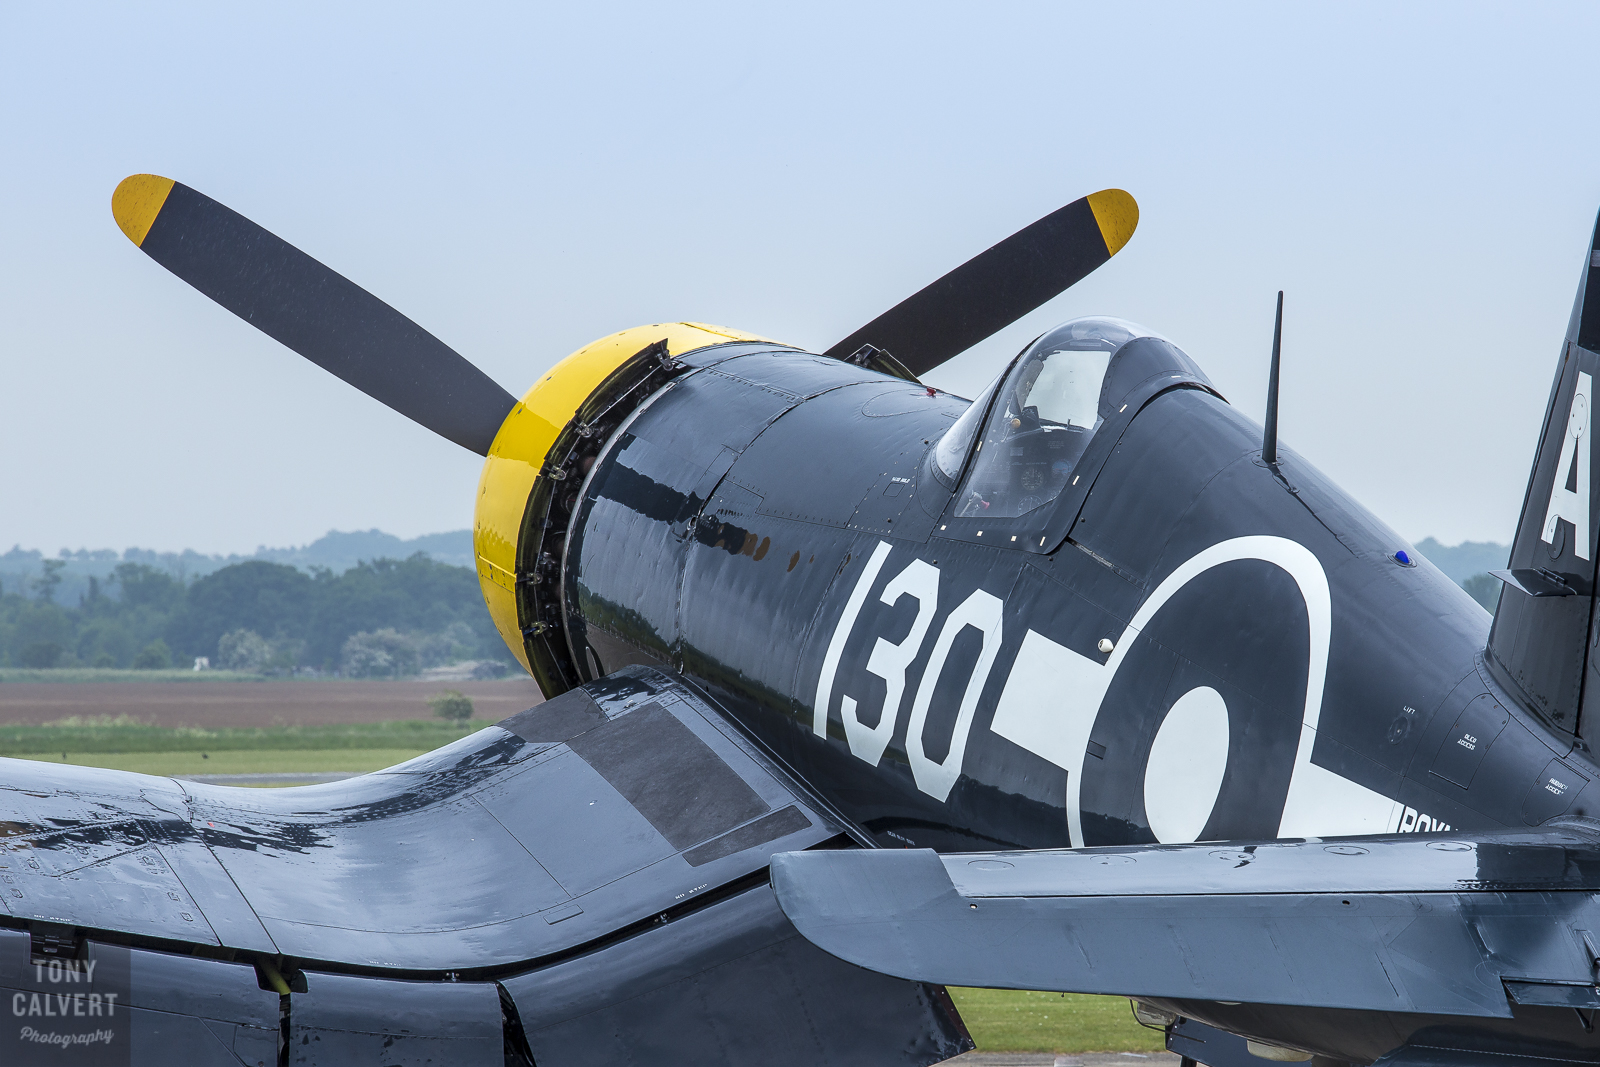 Corsair waiting to fly